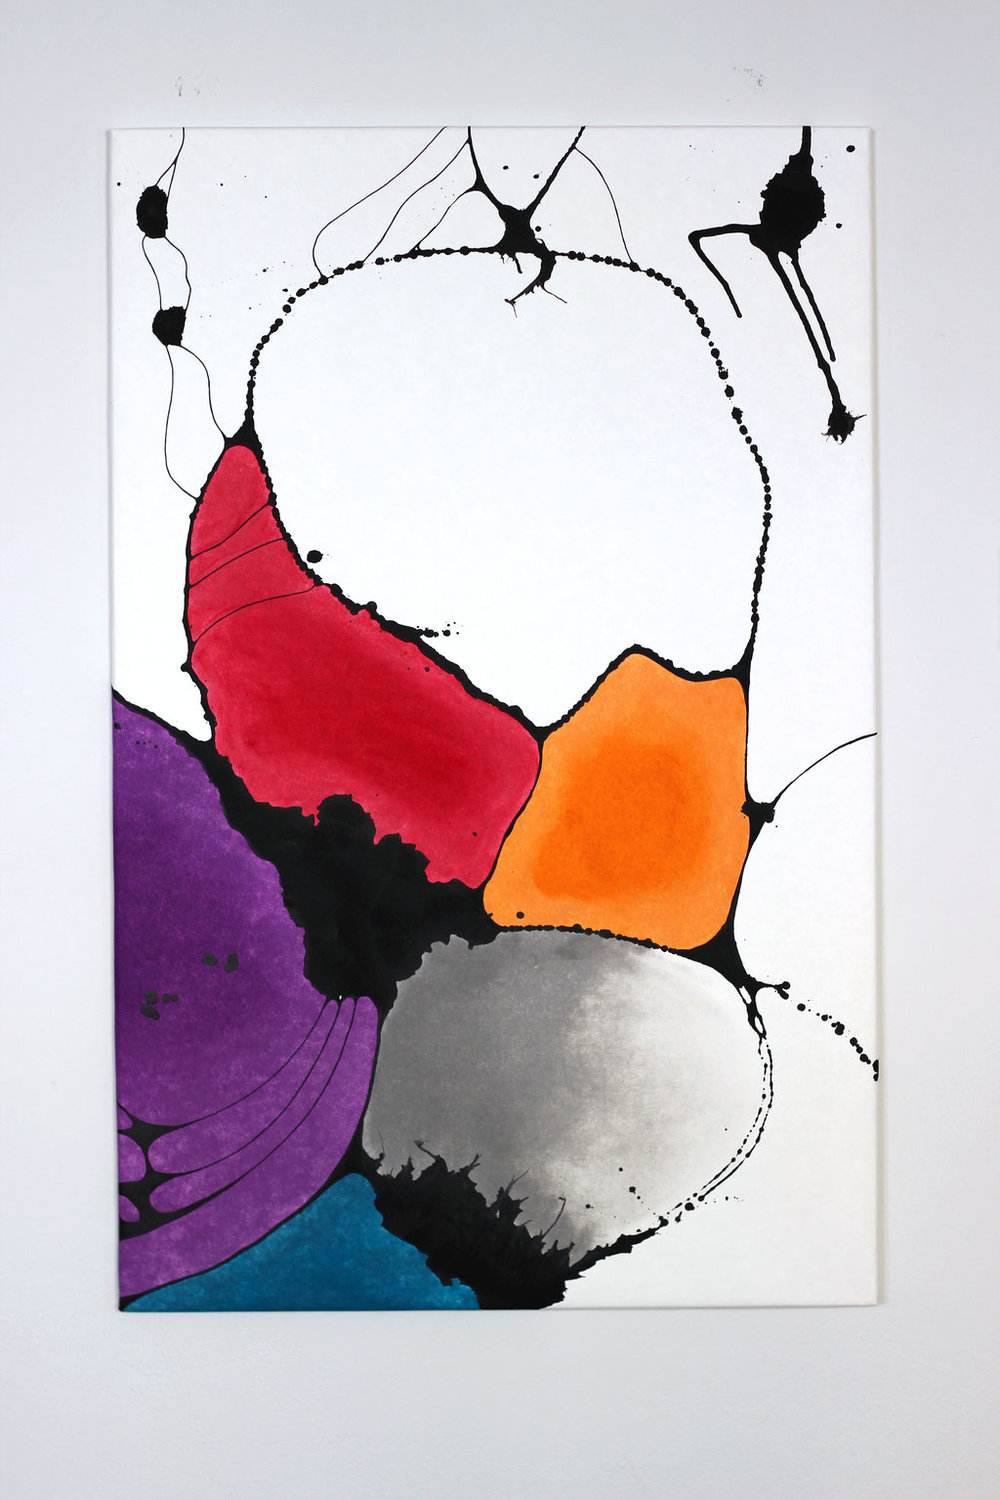 Vatertag - Acrylic paint on cellulose-latex paper.Stretched over wooden frame.height: 140cm width: 90cm